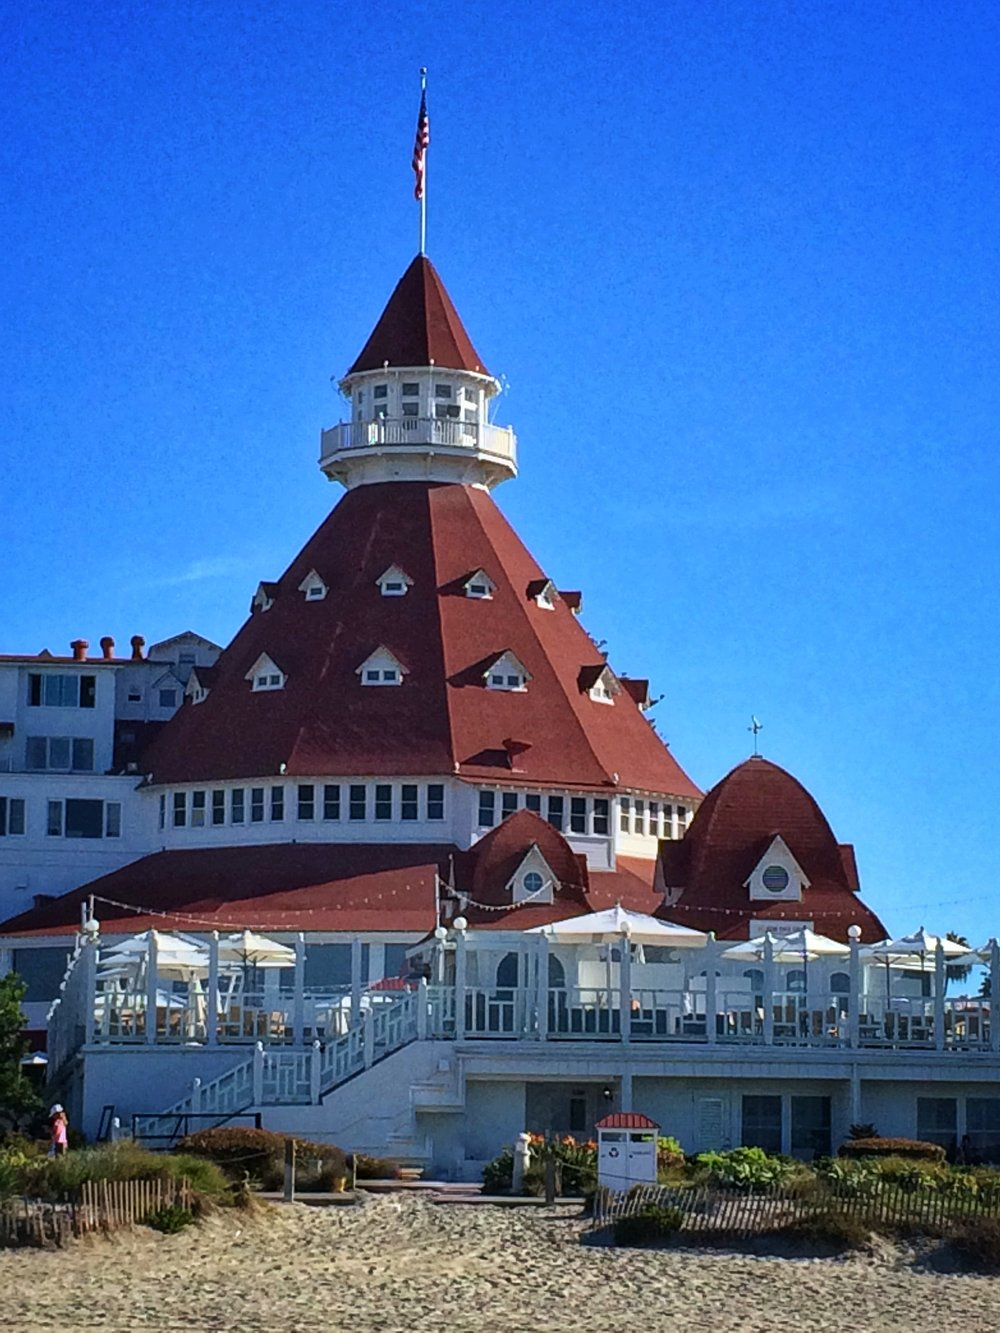 The Hotel Del Coronado: a spot where Kate Morgan checked in, but never left.